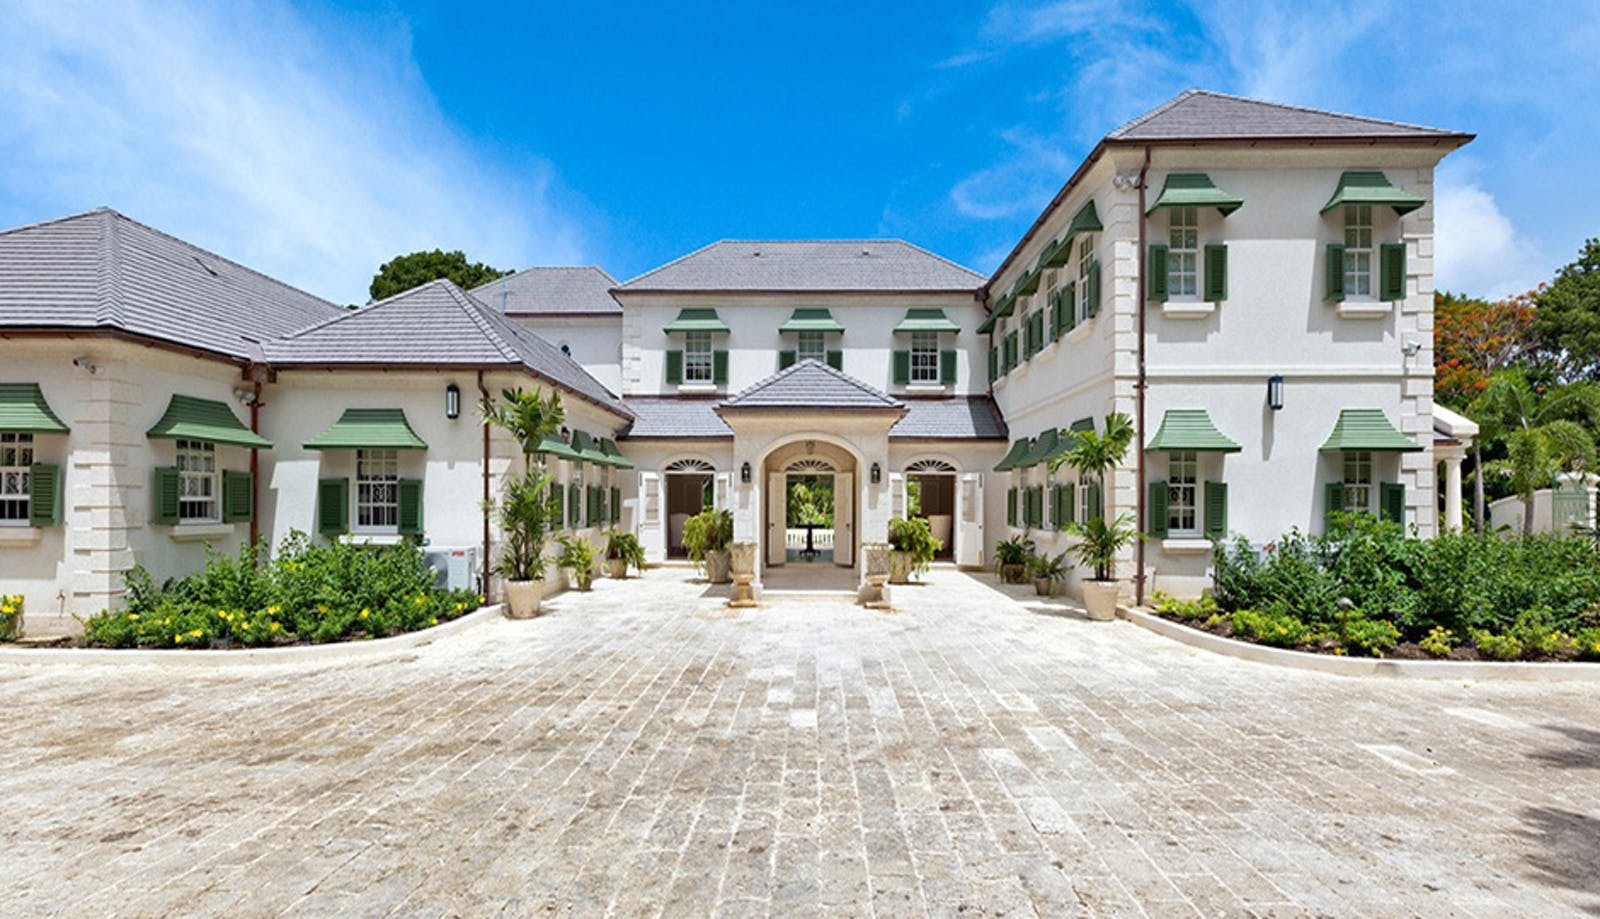 Exterior at Windward House Villa, Sandy Lane Barbados